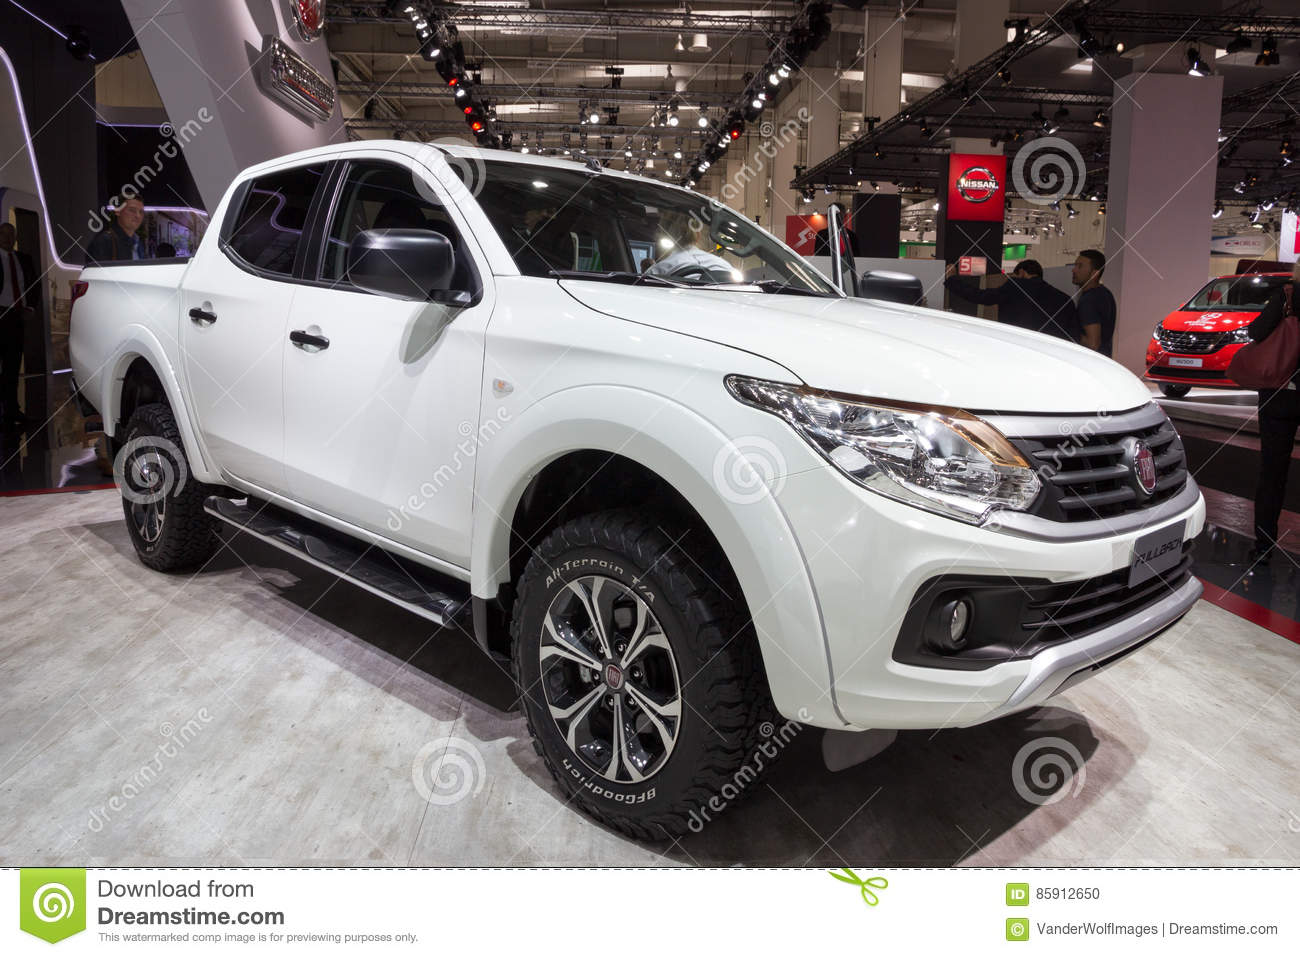 hight resolution of hannover germany sep 21 2016 new 2017 fiat professional fullback extended cab pick up truck at the international motor show for commercial vehicles